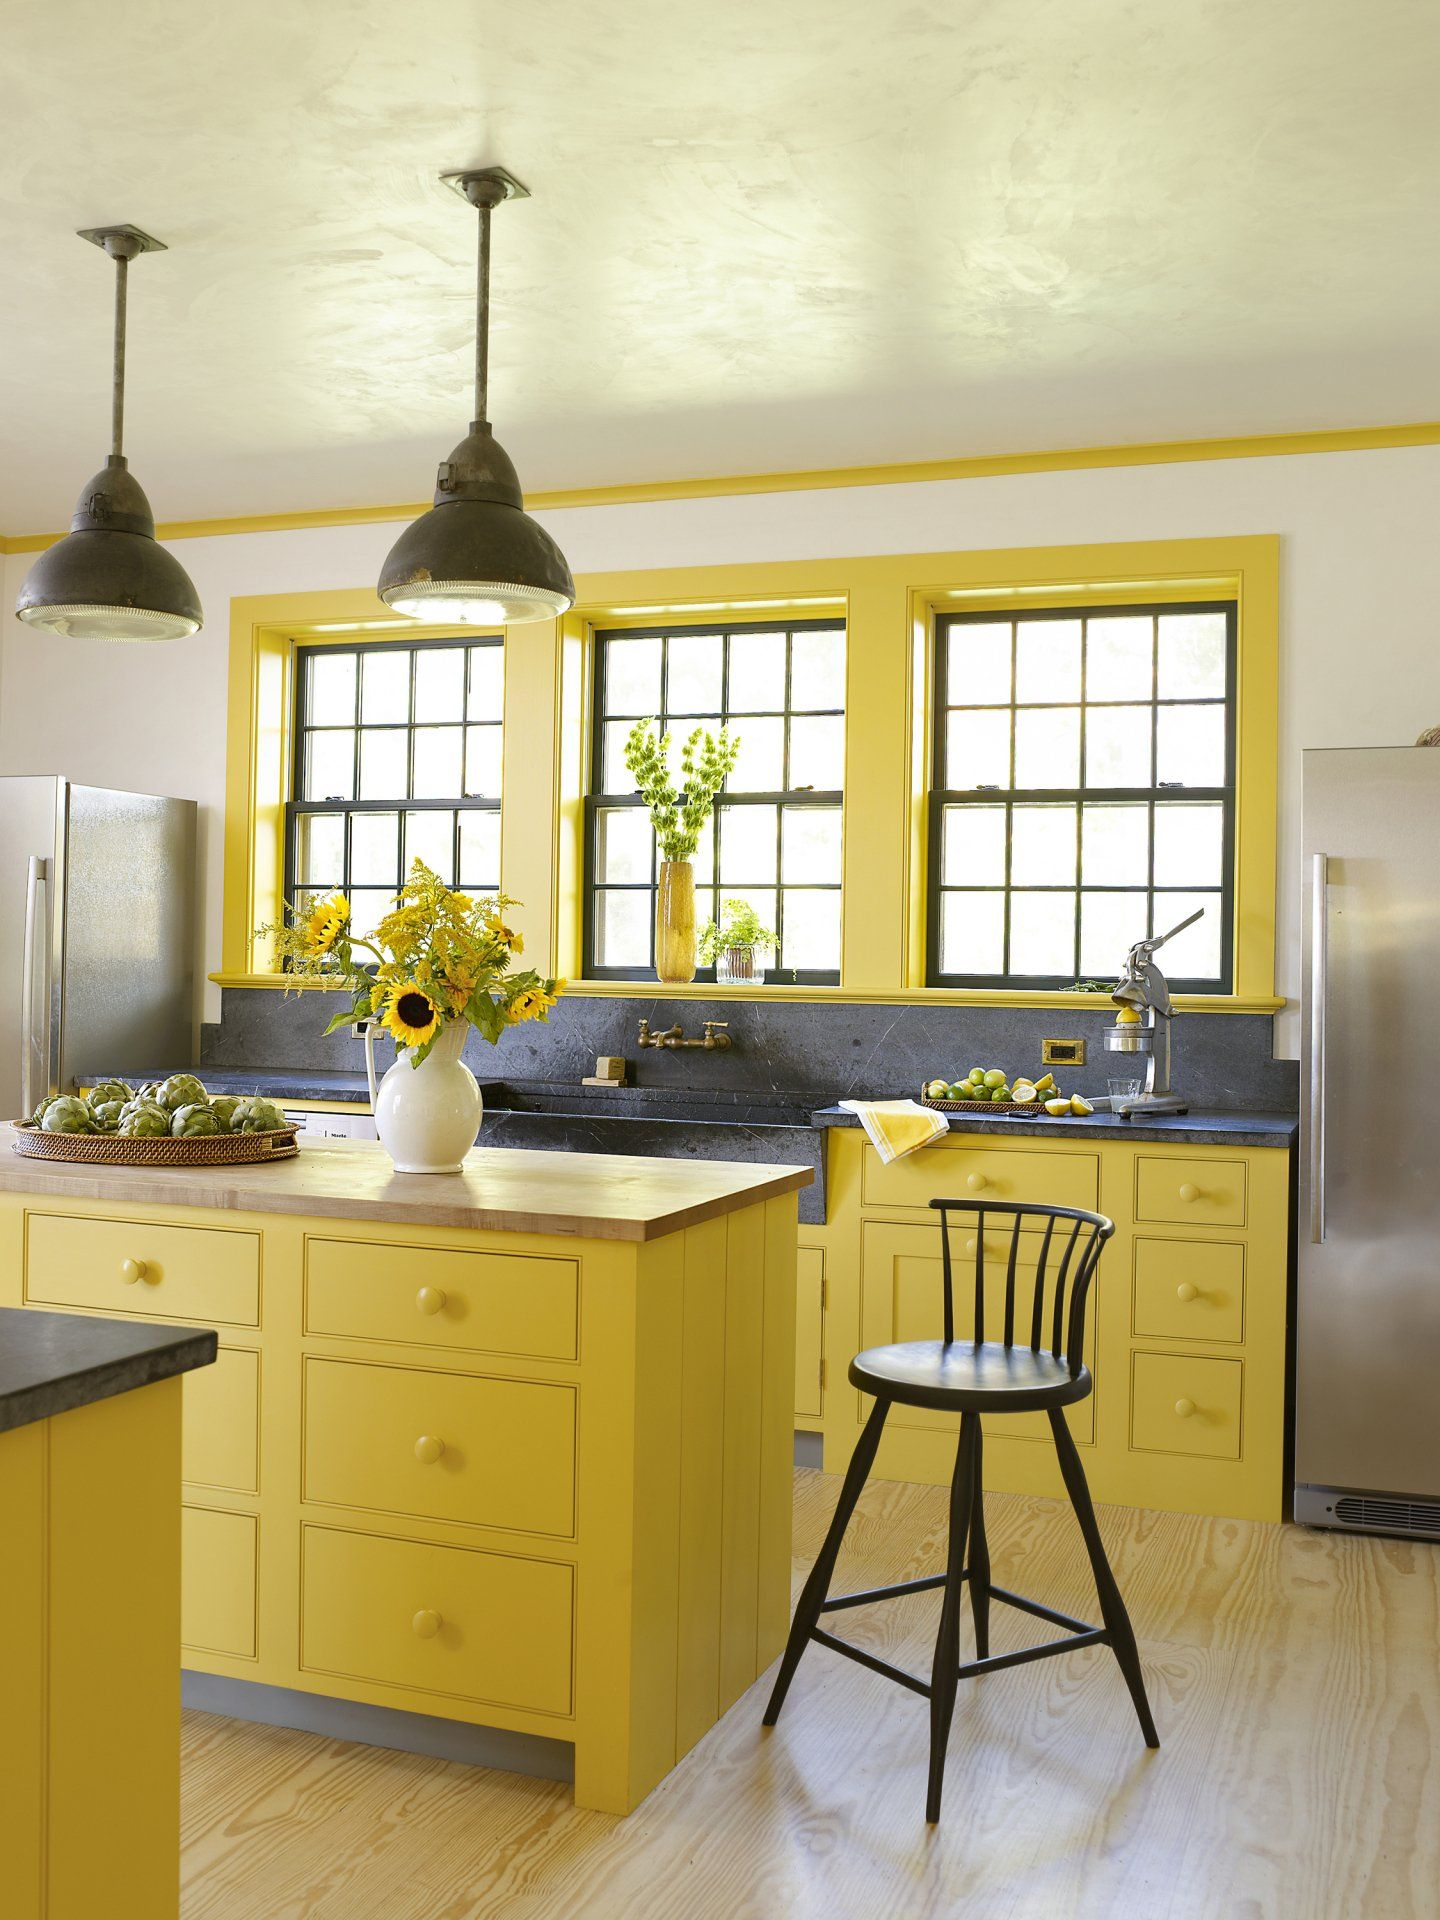 How to Paint Your Kitchen Cabinets   Yellow kitchen decor, Yellow ...